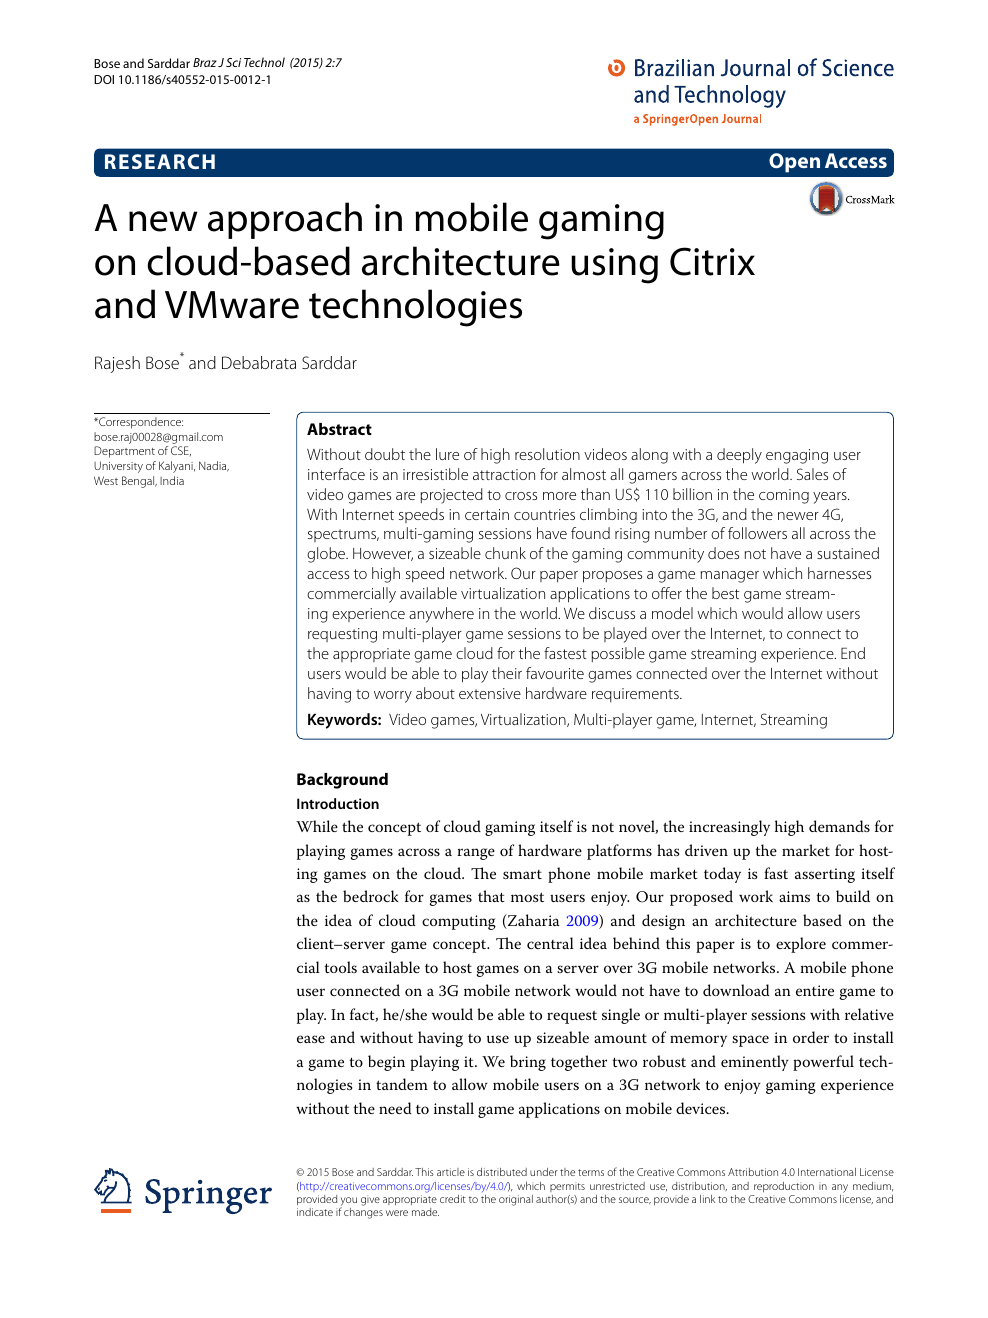 A new approach in mobile gaming on cloud-based architecture